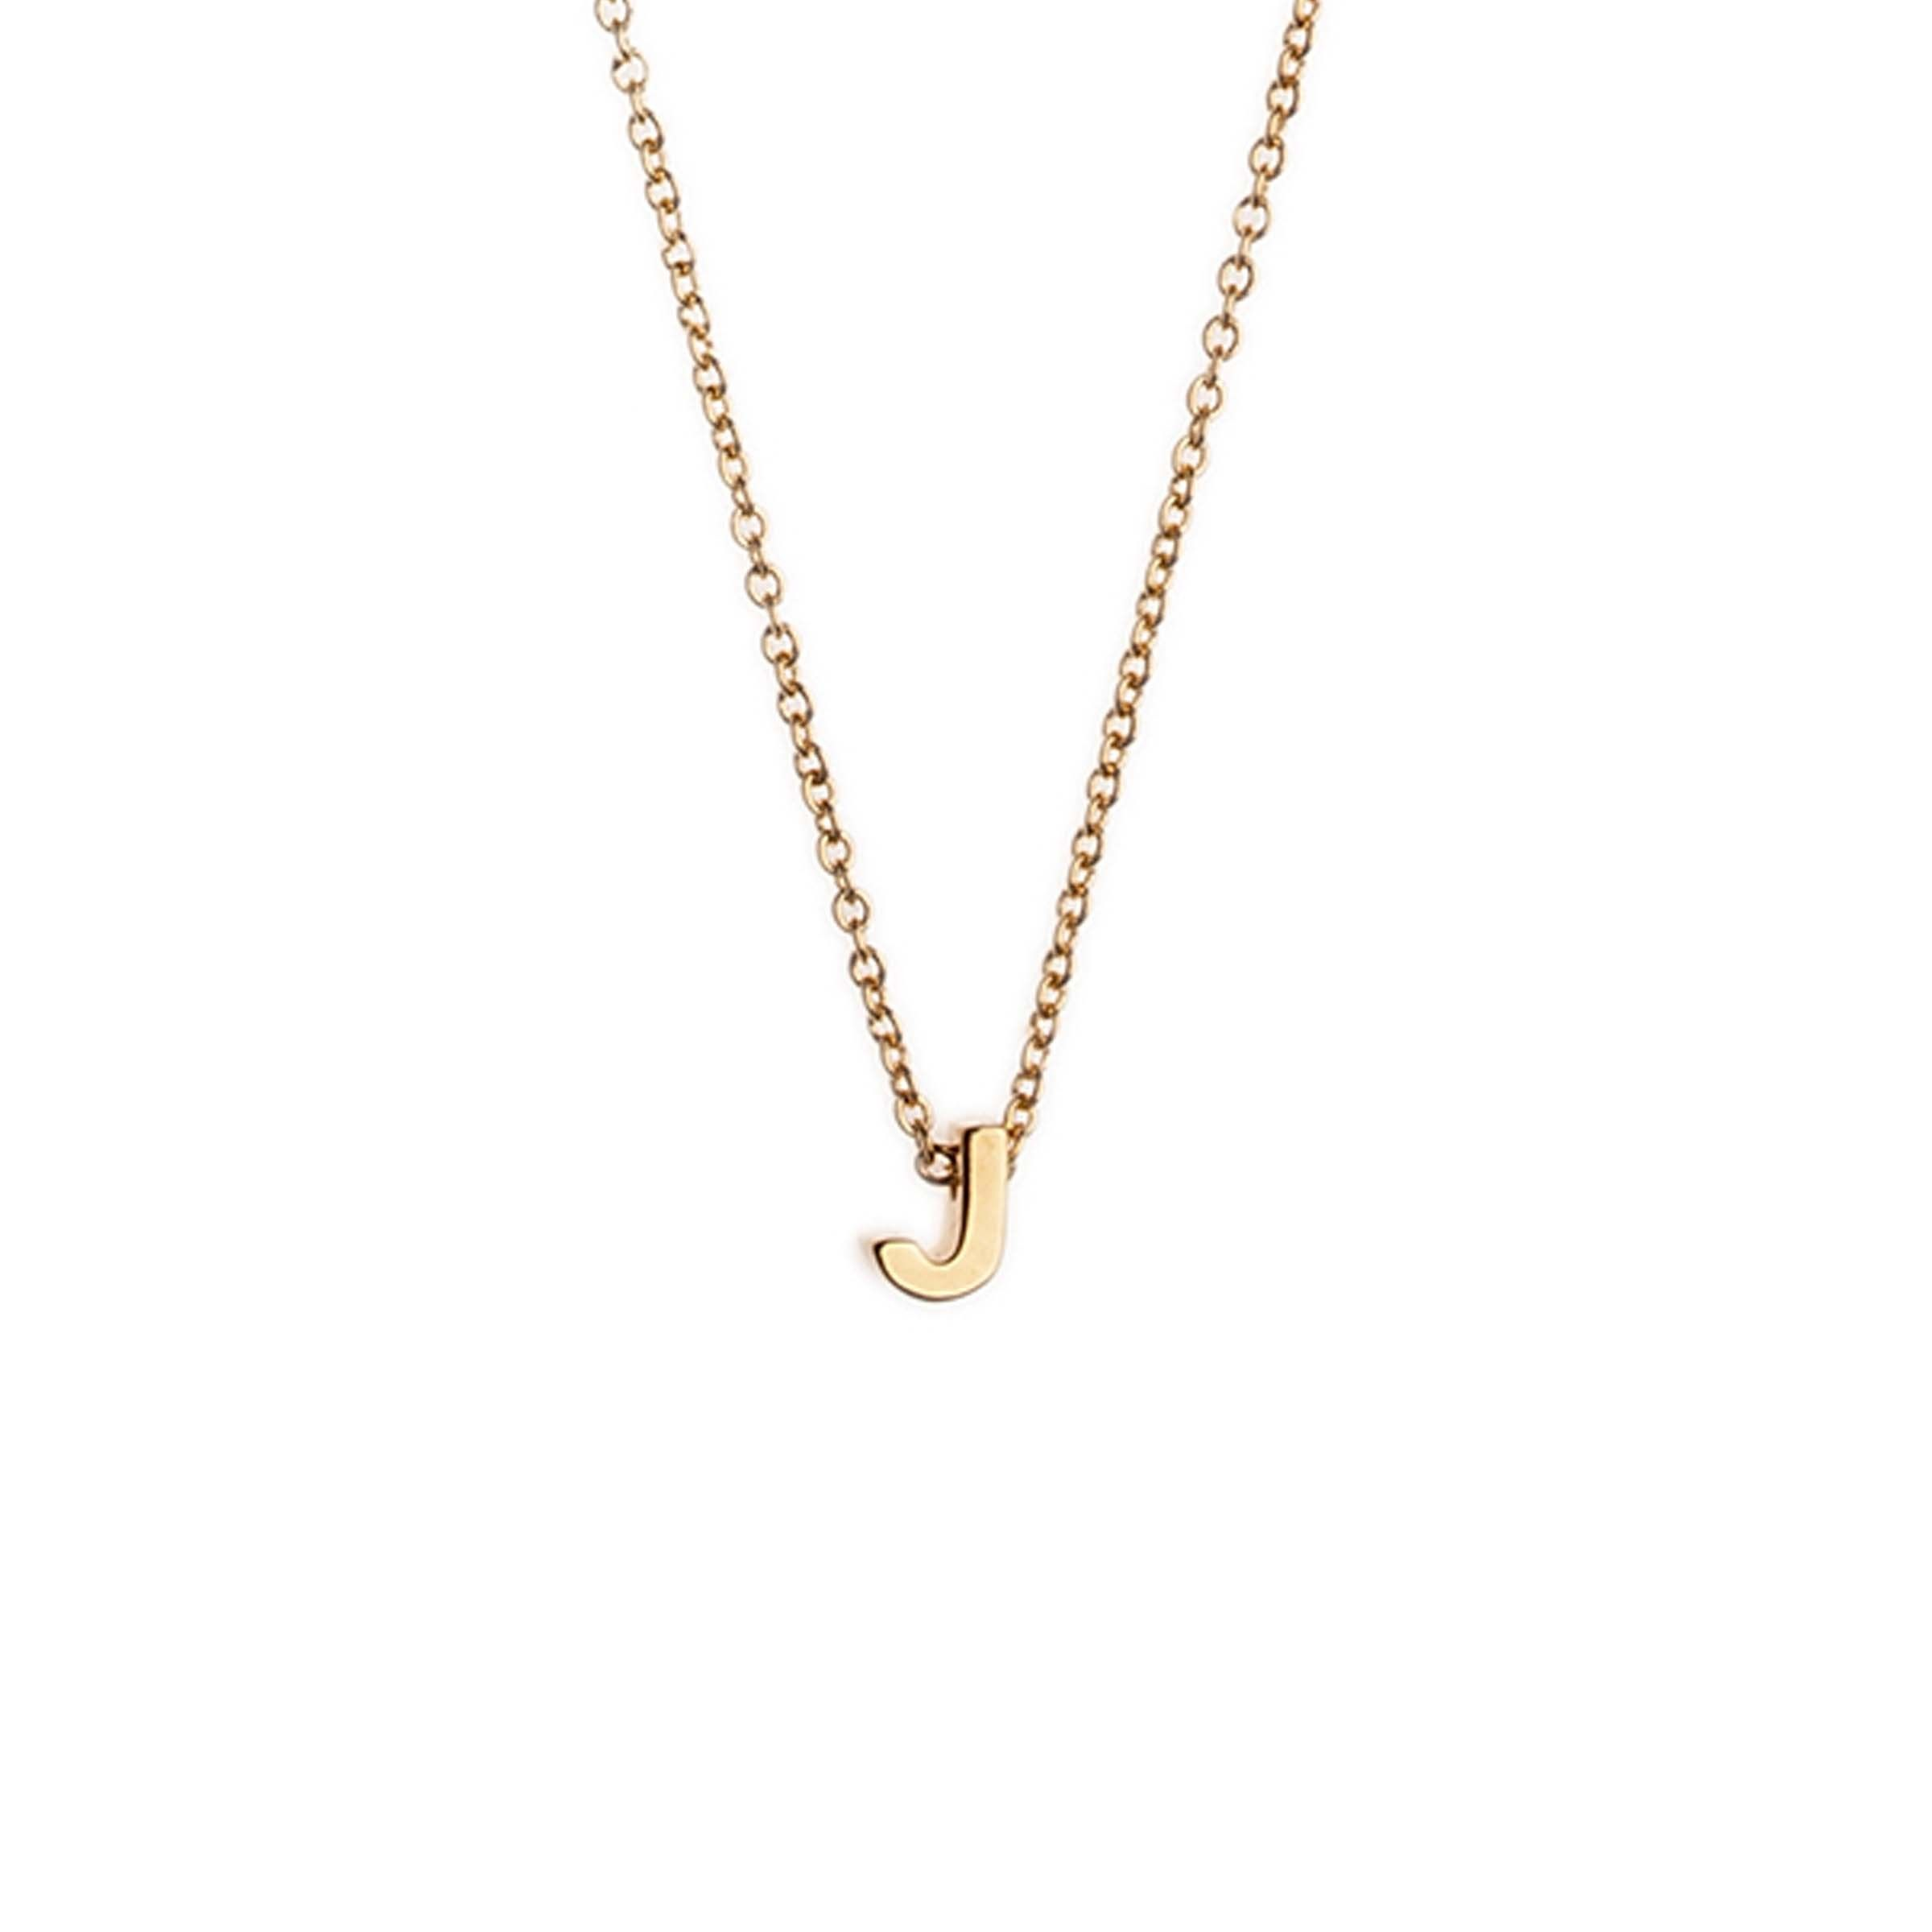 Gold plated j initial necklace initial jewellery shop the trends gold plated j initial necklace initial jewellery shop the trends beautiful costume jewellery aloadofball Images